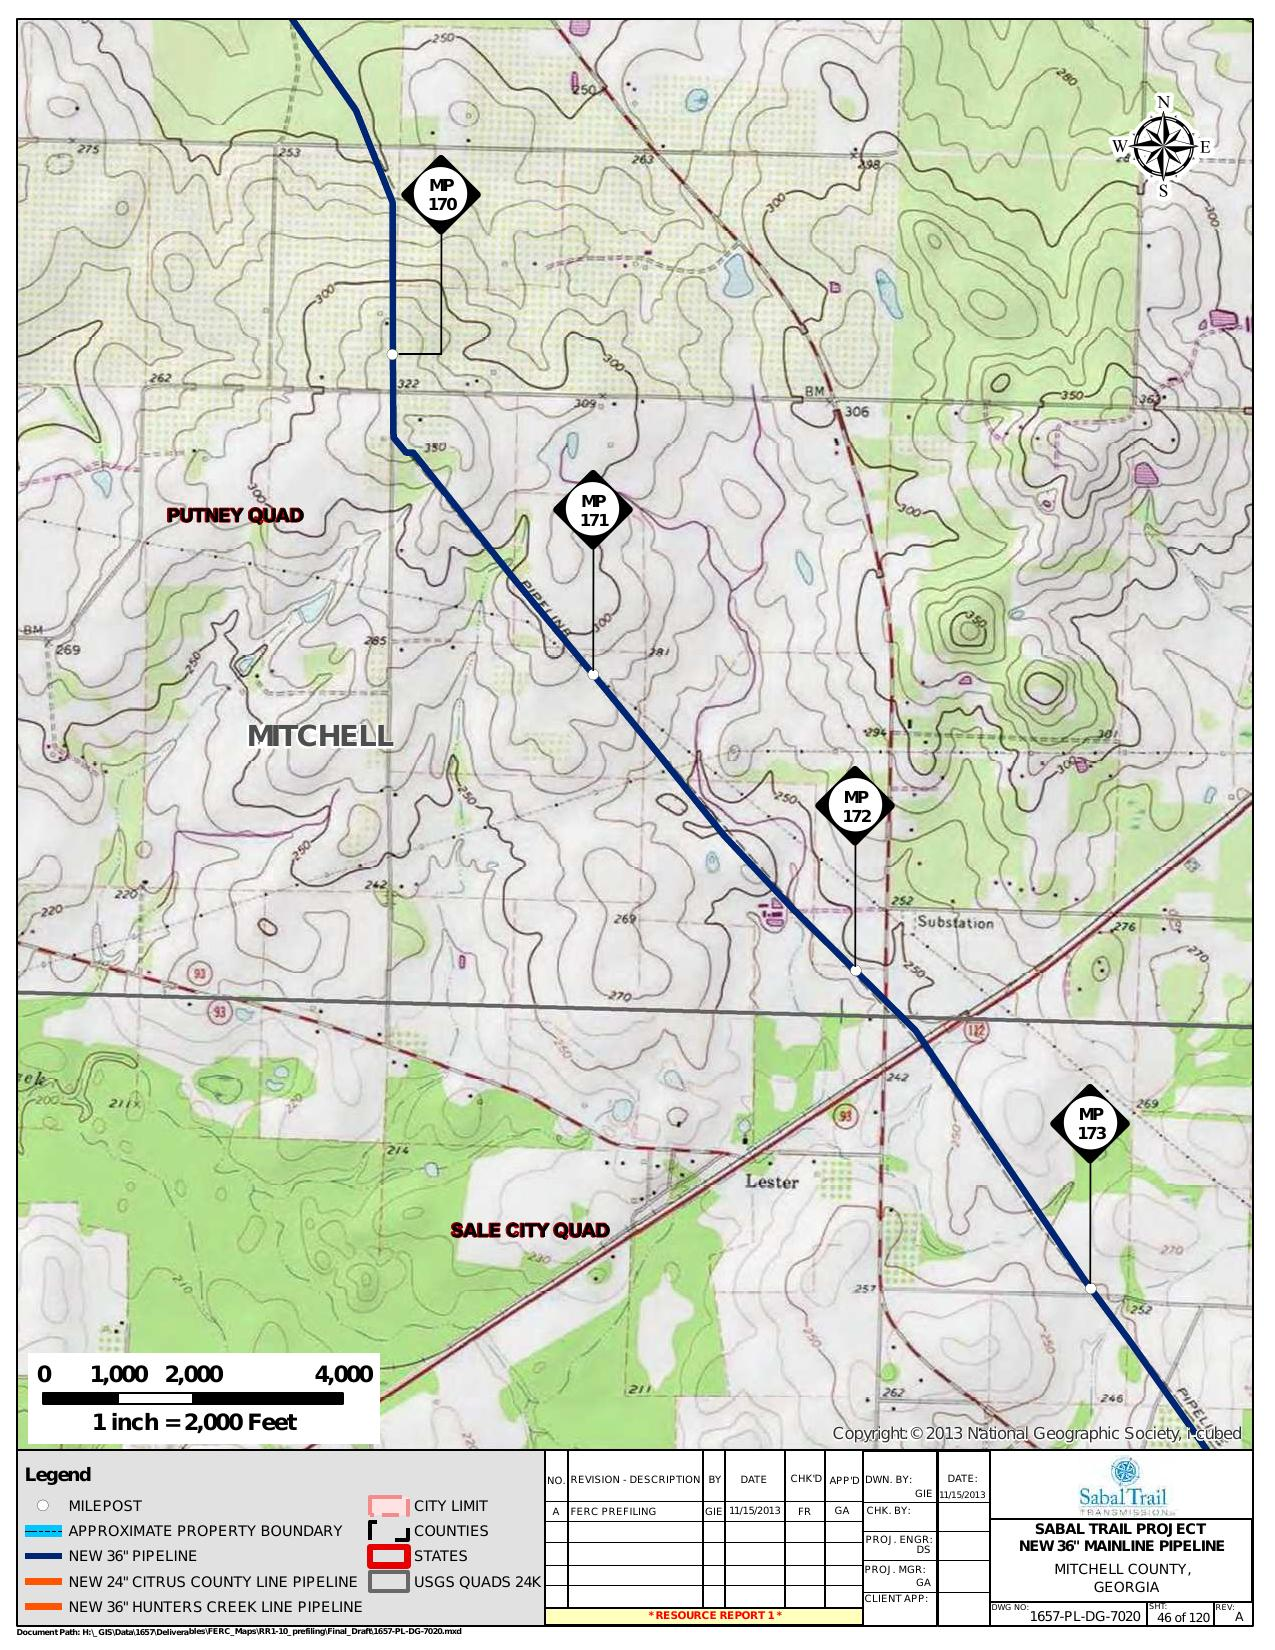 Lester, Mitchell County, Georgia, in General Project Description, by SpectraBusters, for FERC Docket No. PF14-1-000, 15 November 2013, converted by SpectraBusters